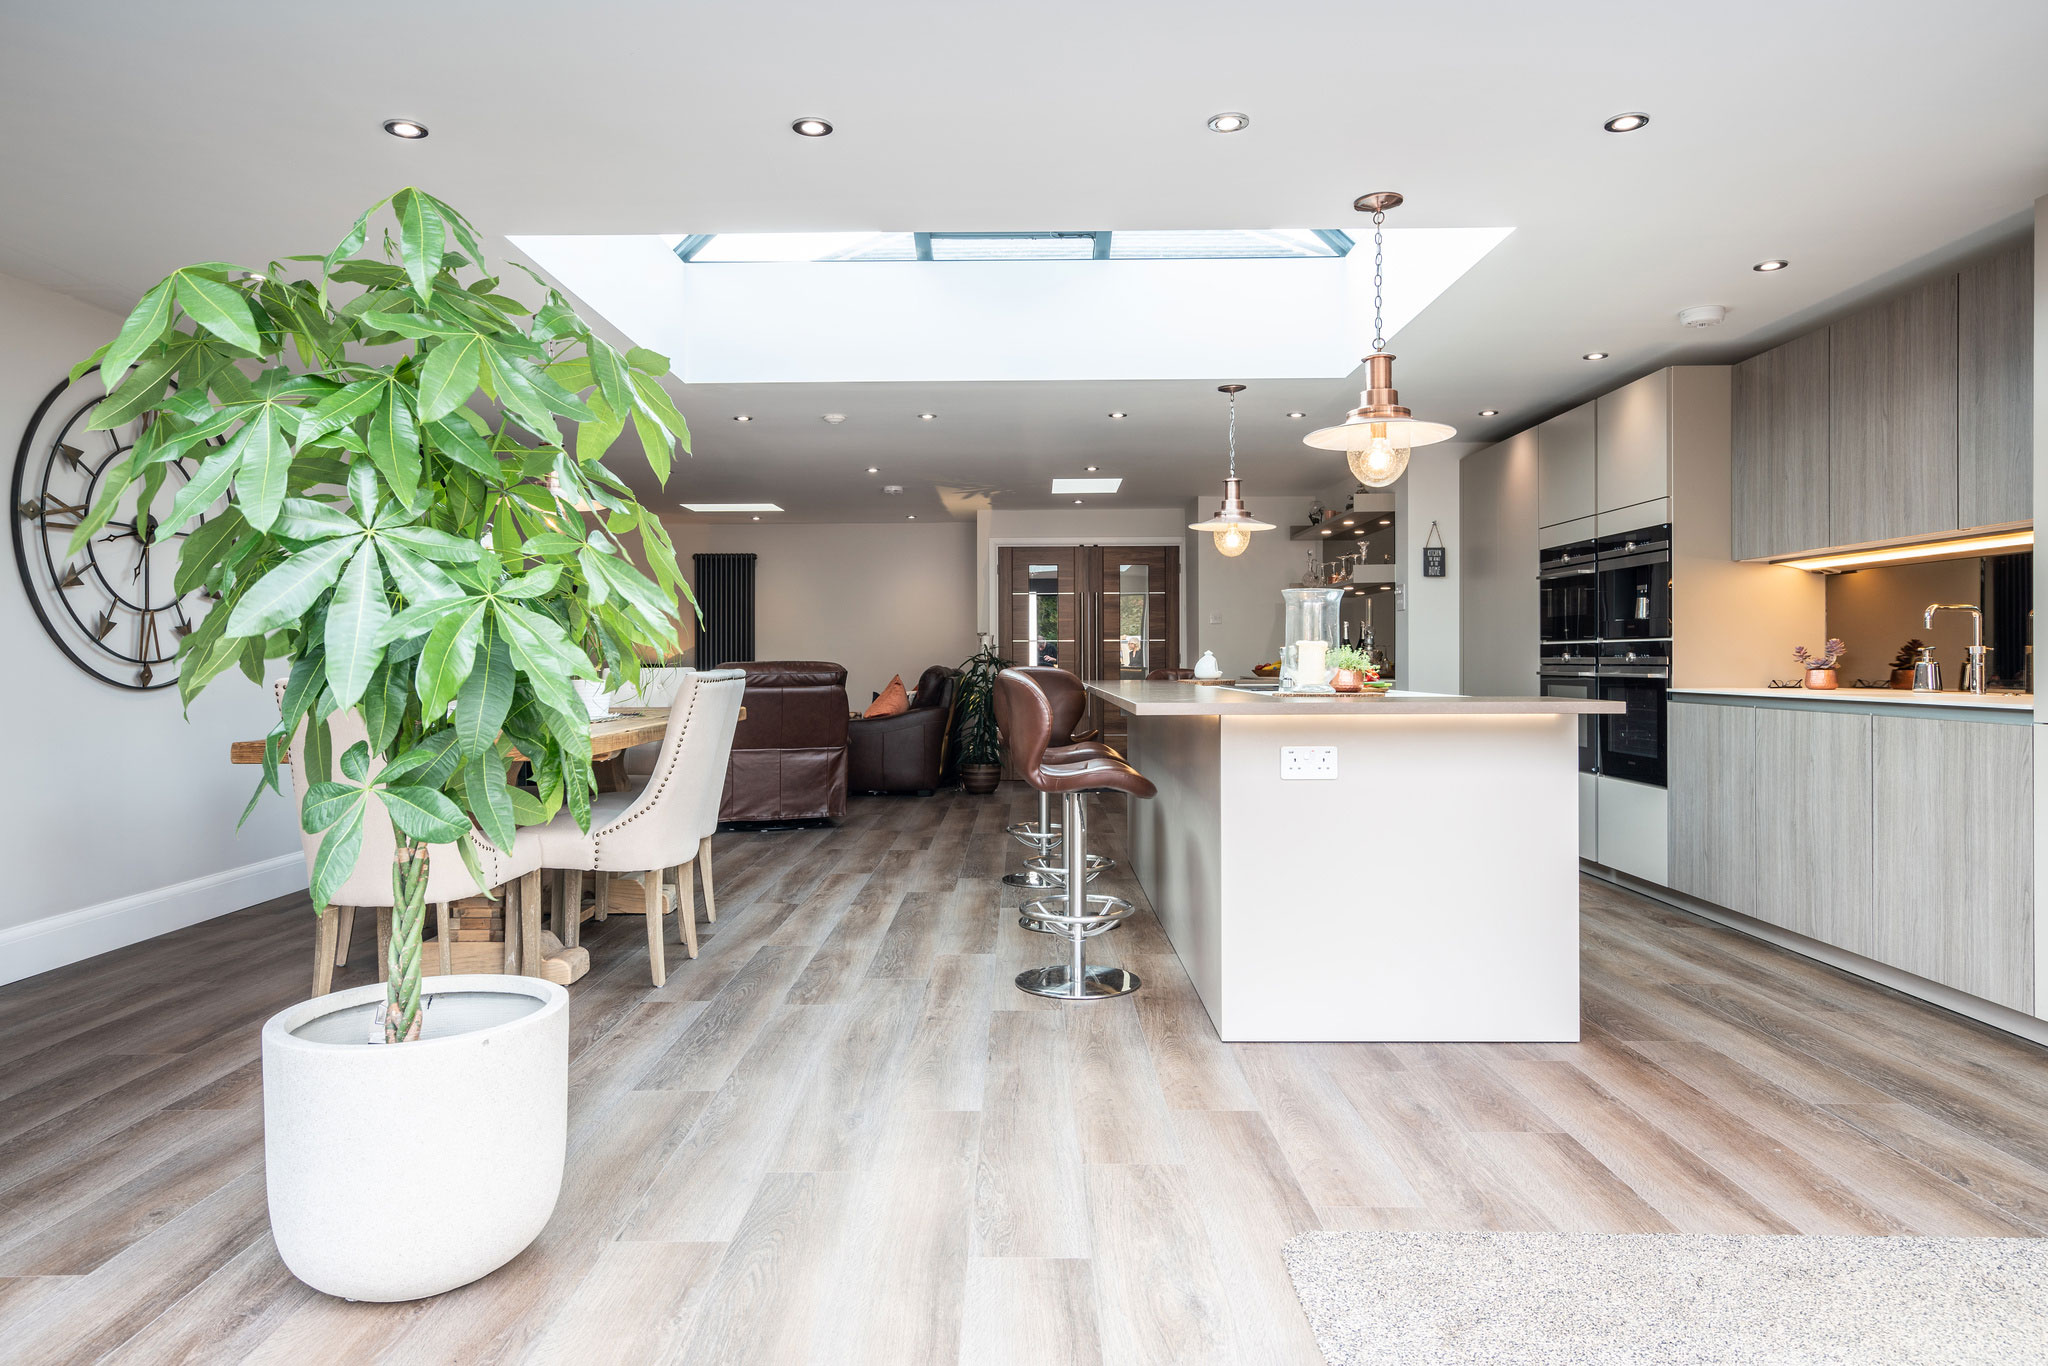 Image of Myers Touch Daniels Kitchen 01224 ZF 2442 14358 1 069 in A space designed for socialising - Cosentino